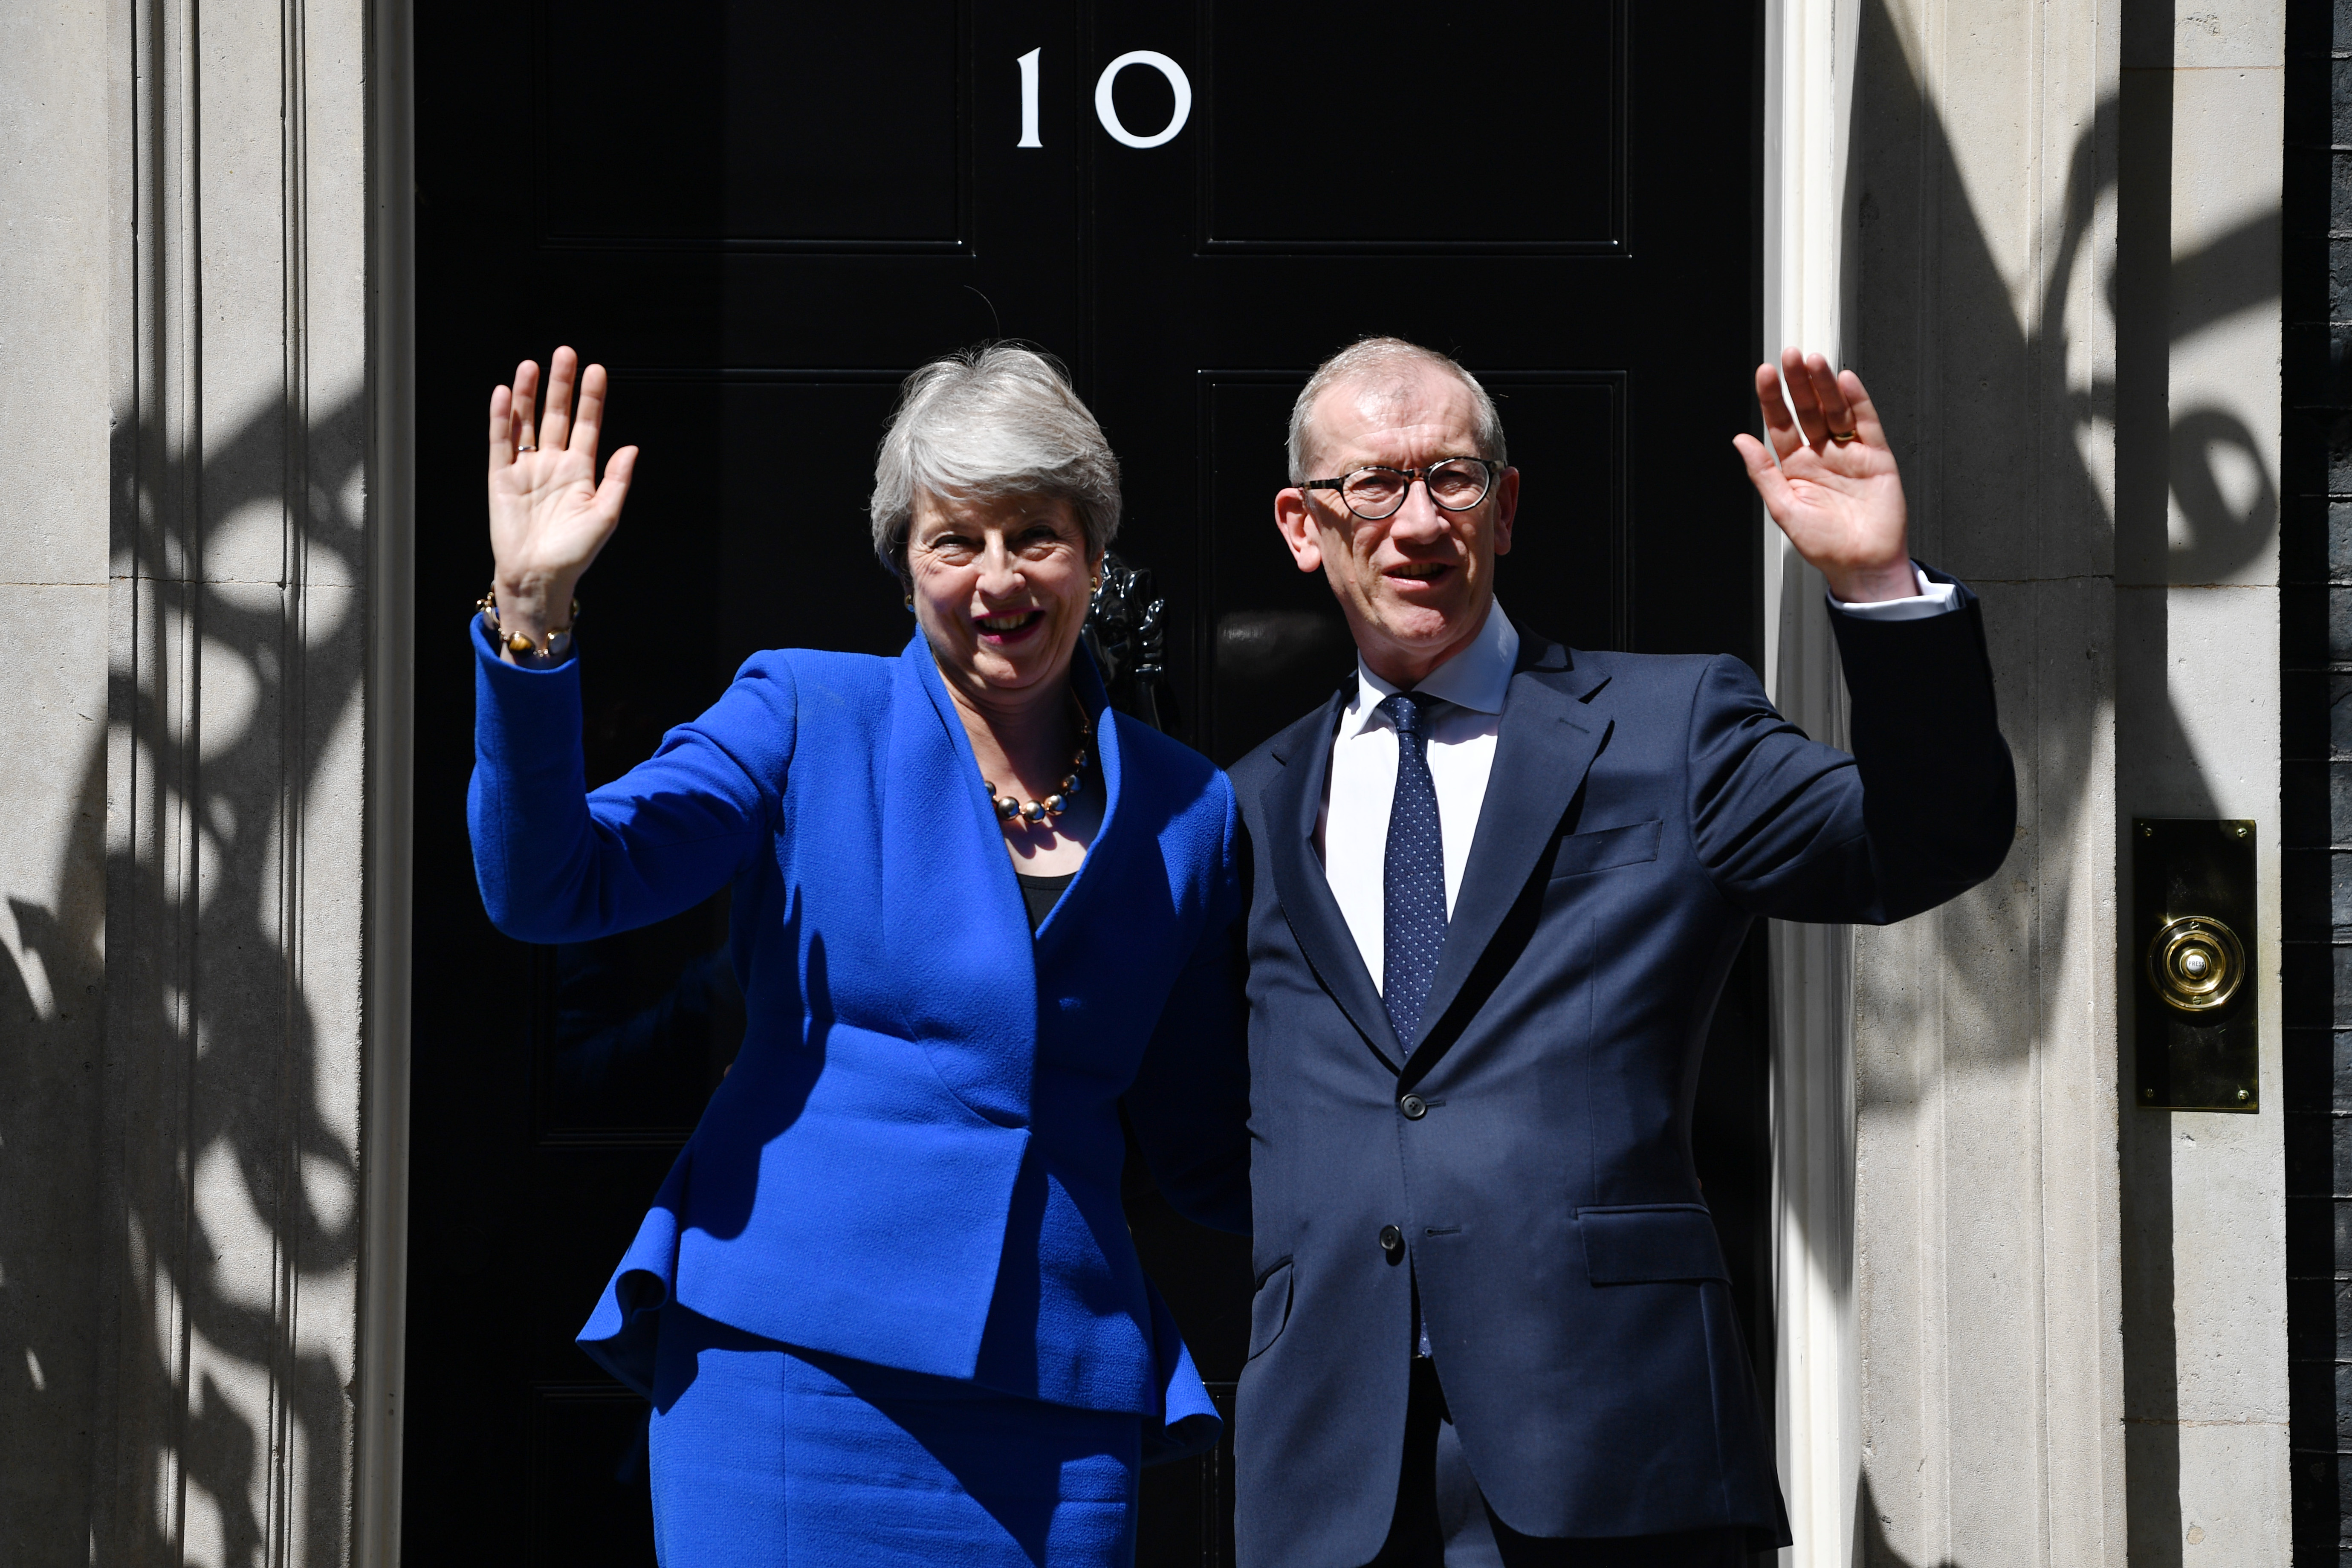 Theresa May waves to the world's media beside husband Philip May from outside 10 Downing Street